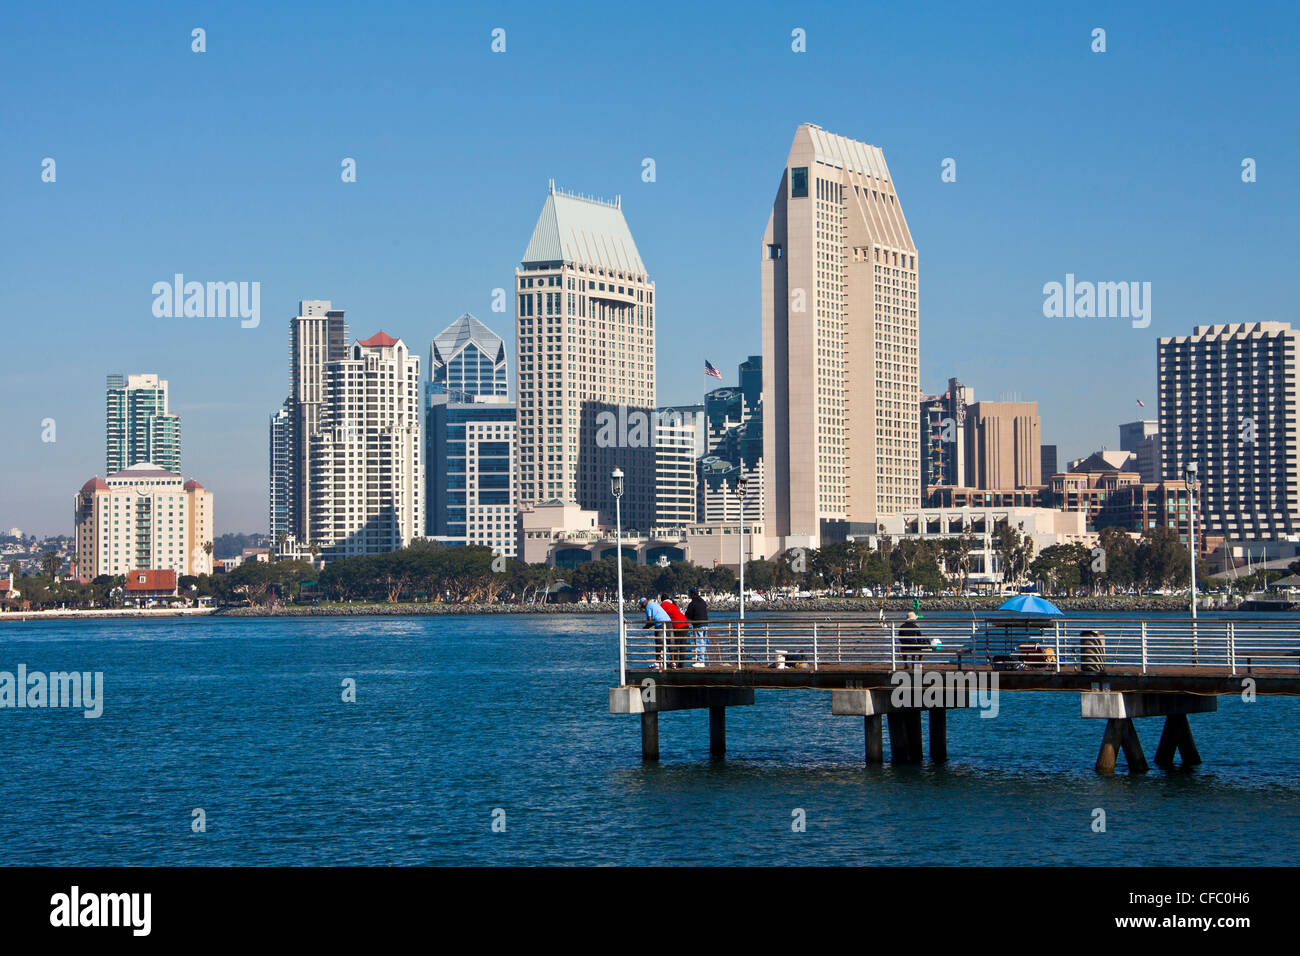 USA, United States, America, California, San Diego, City, Downtown, from Coronado, peninsula, bay, downtown, pier, - Stock Image